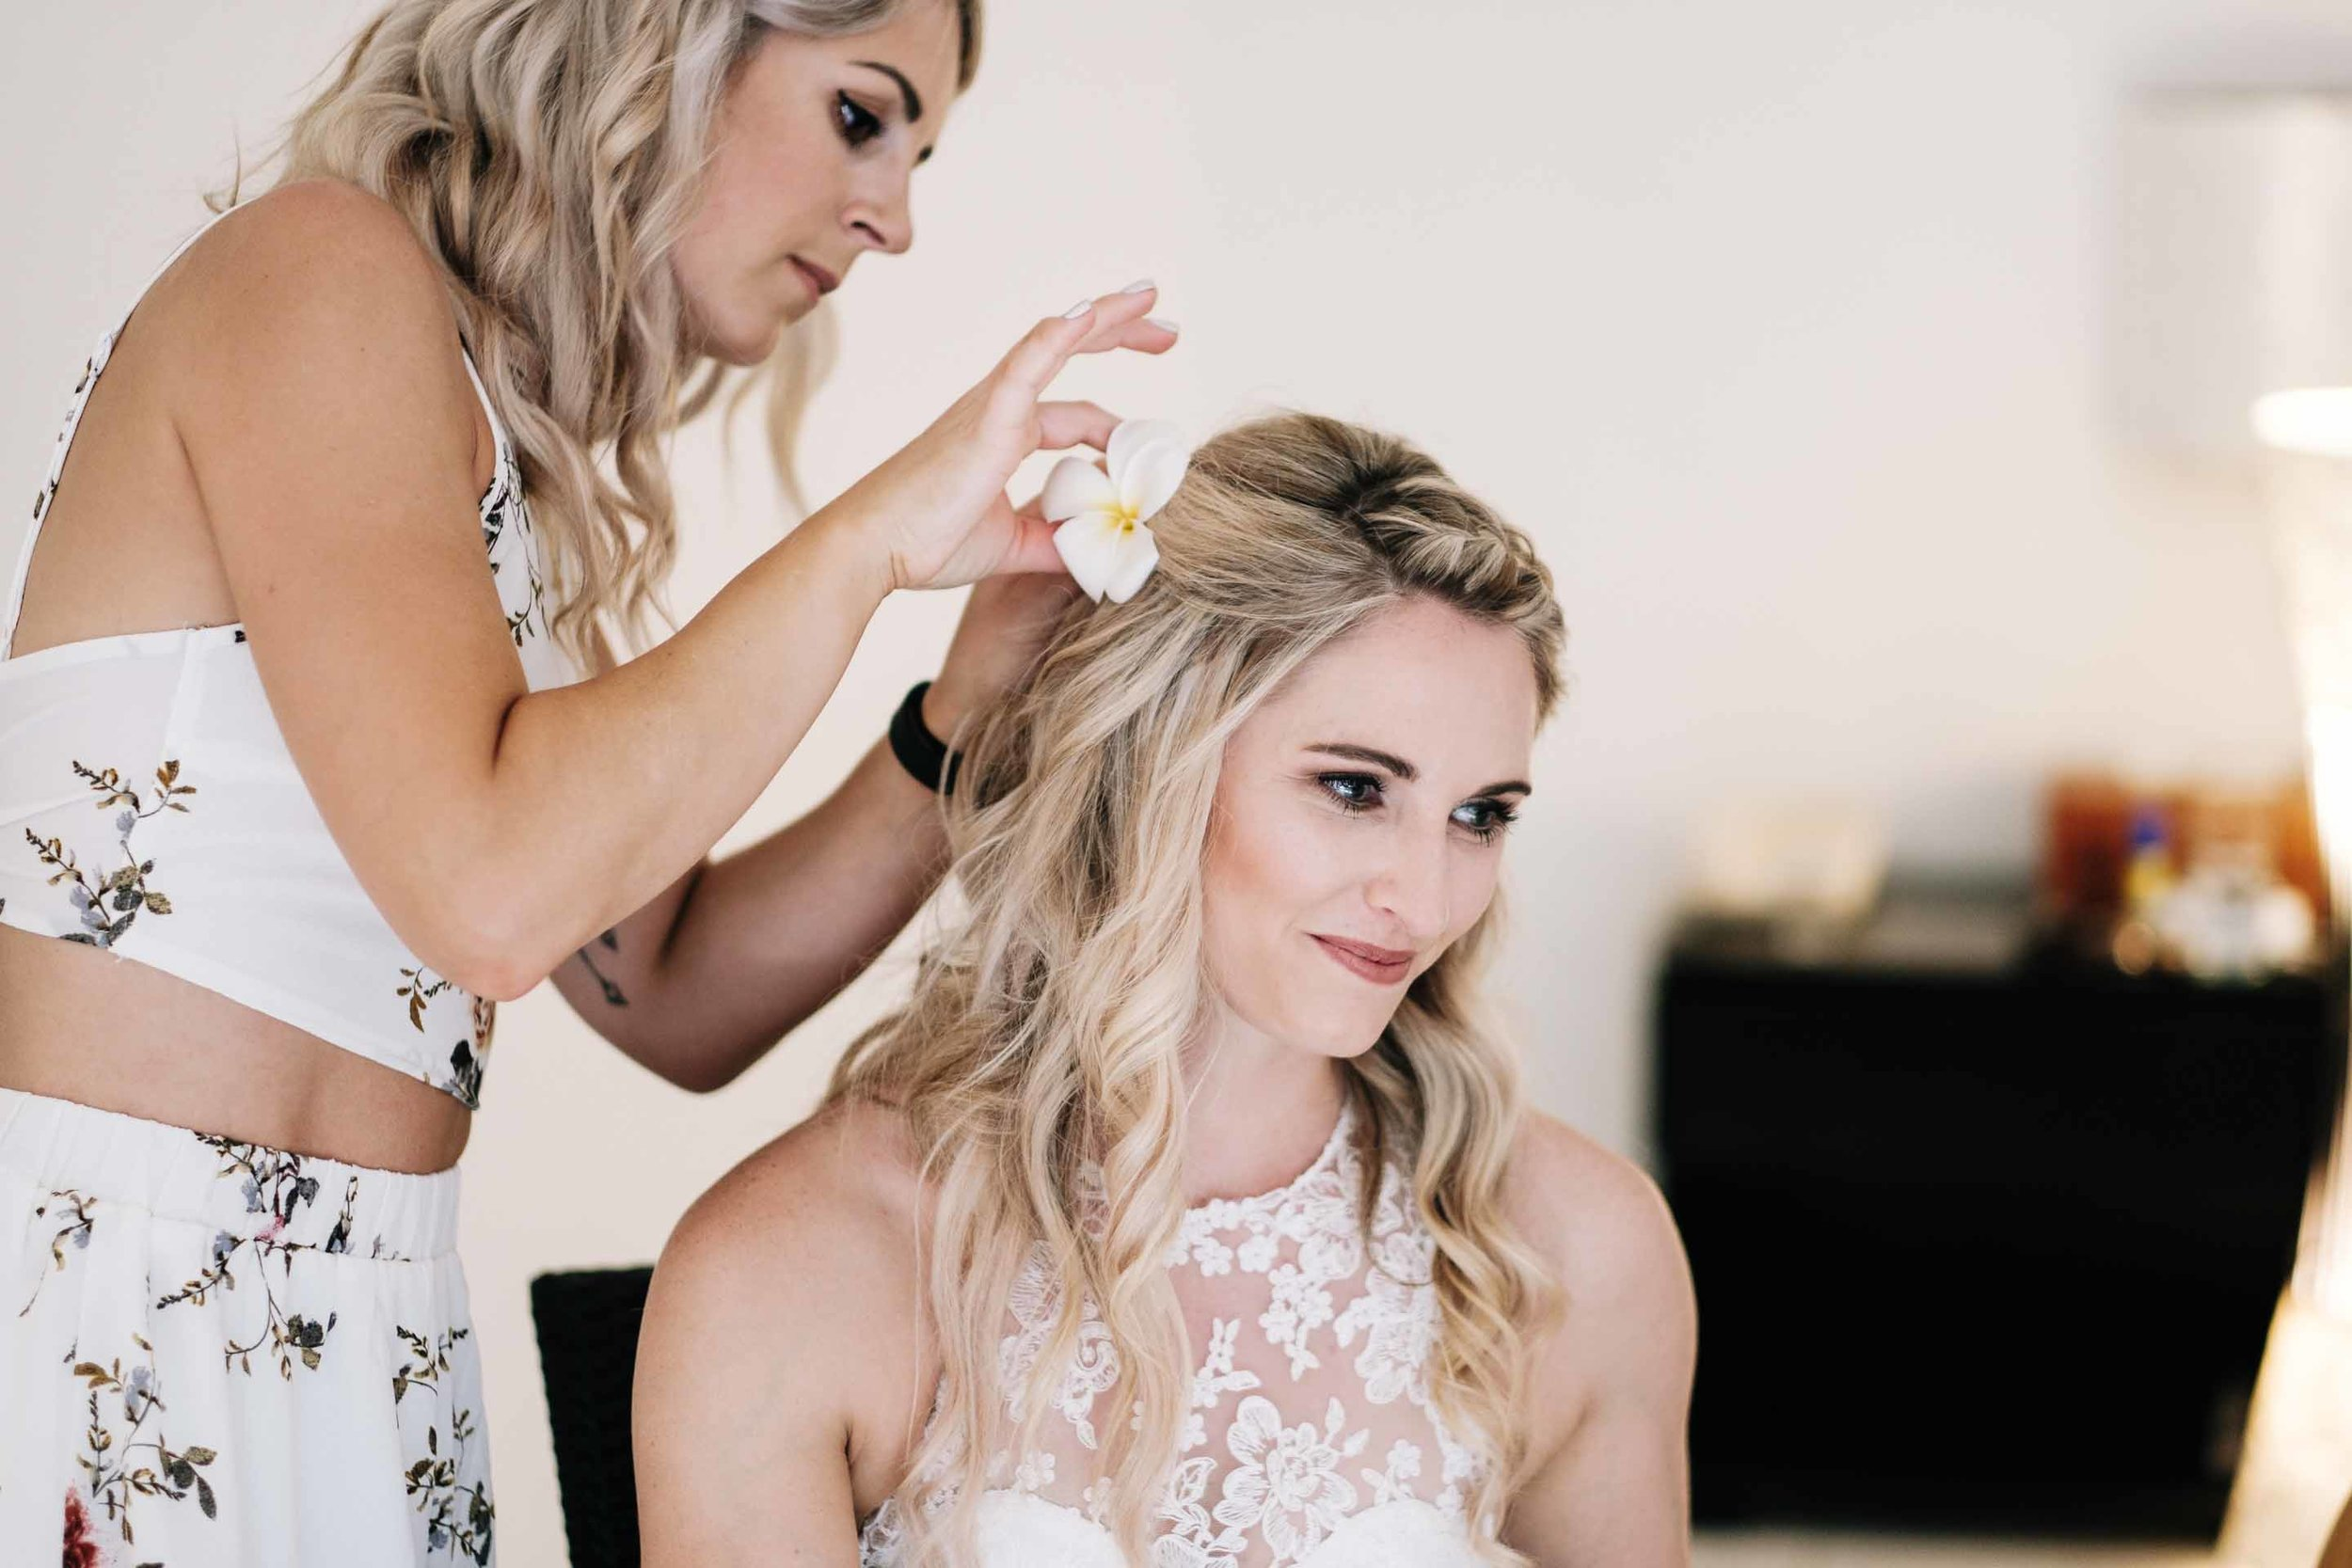 the makeup artist placing a flower into the brides hair